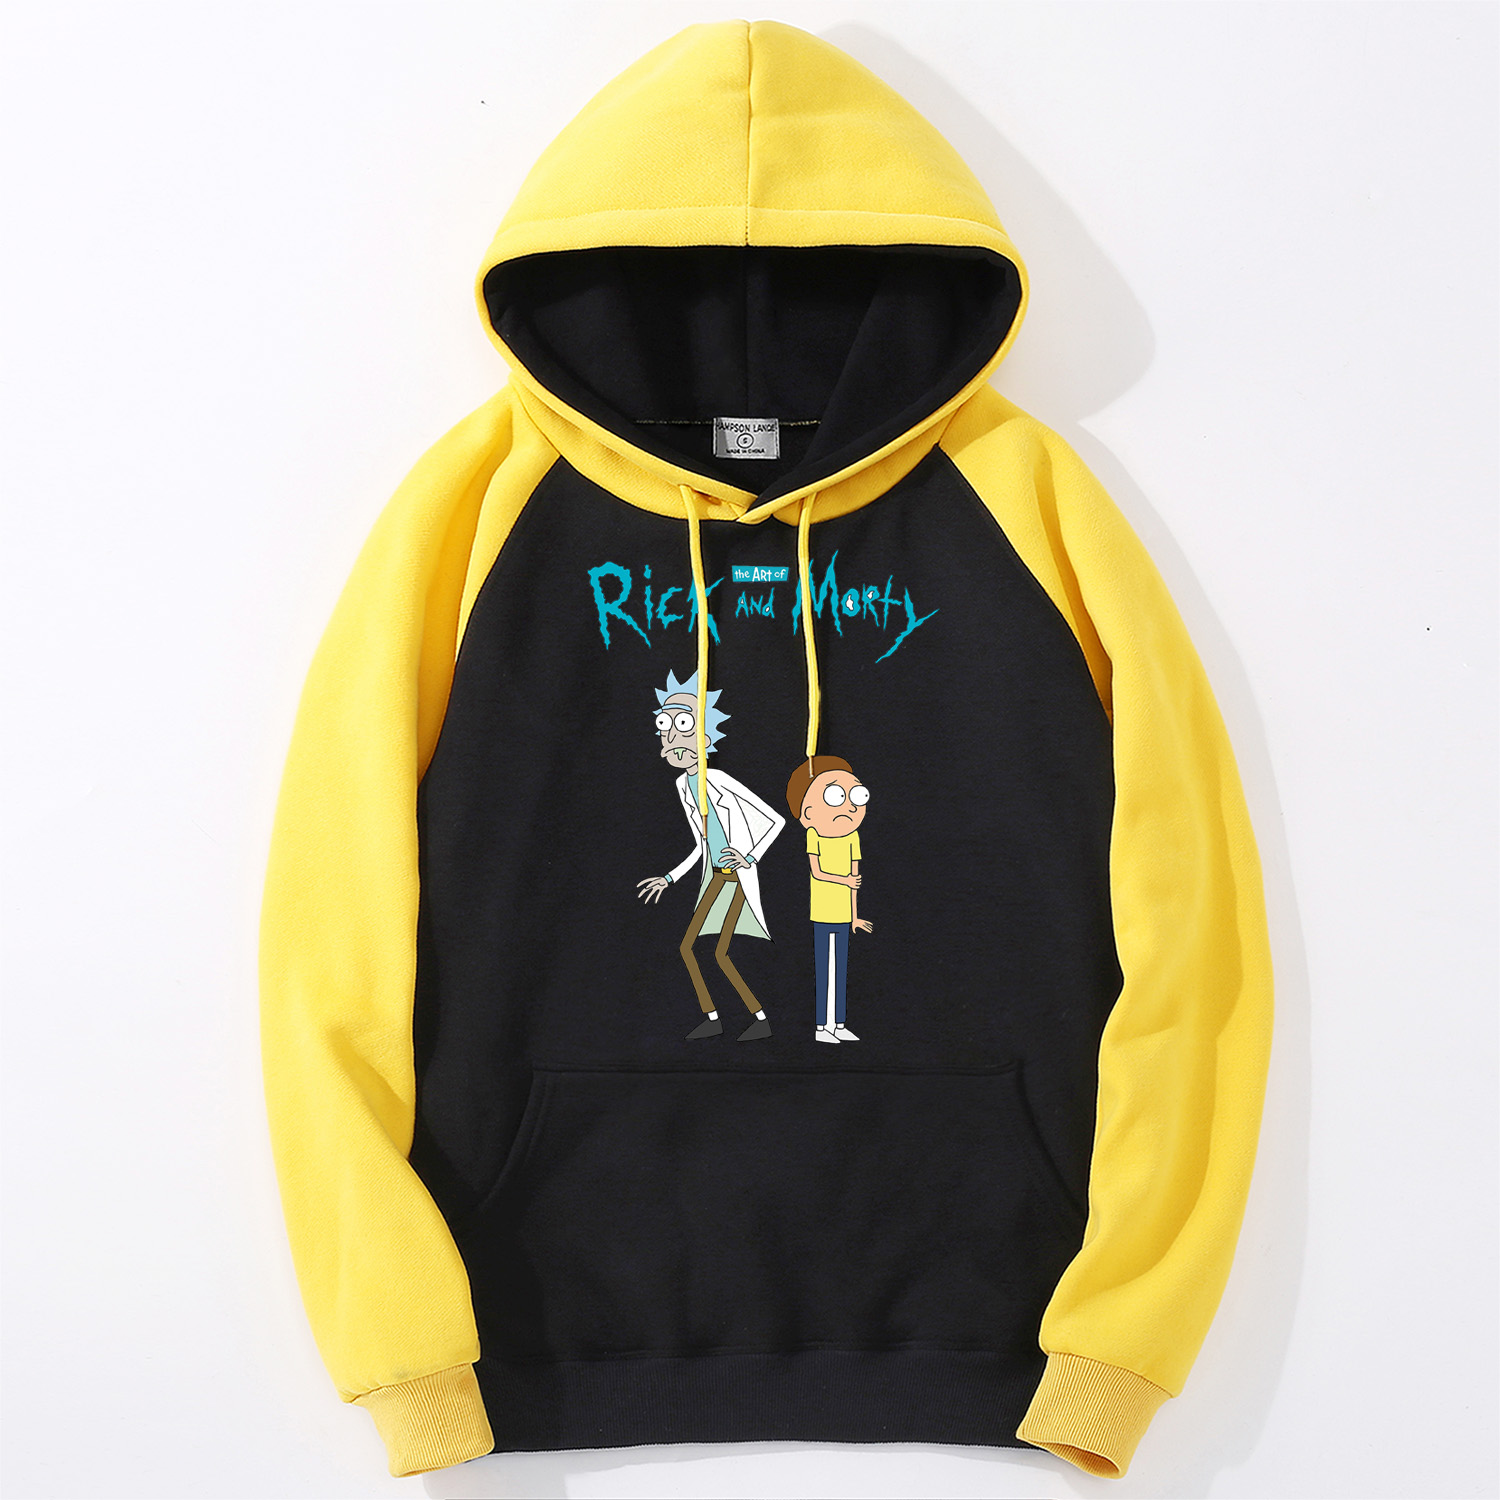 Rick And Morty Cartoon Male Hoodies 2019 High Quality Print Mens Raglan Pullover Casual Hipster Sweatshirts Men Streetwear Tops